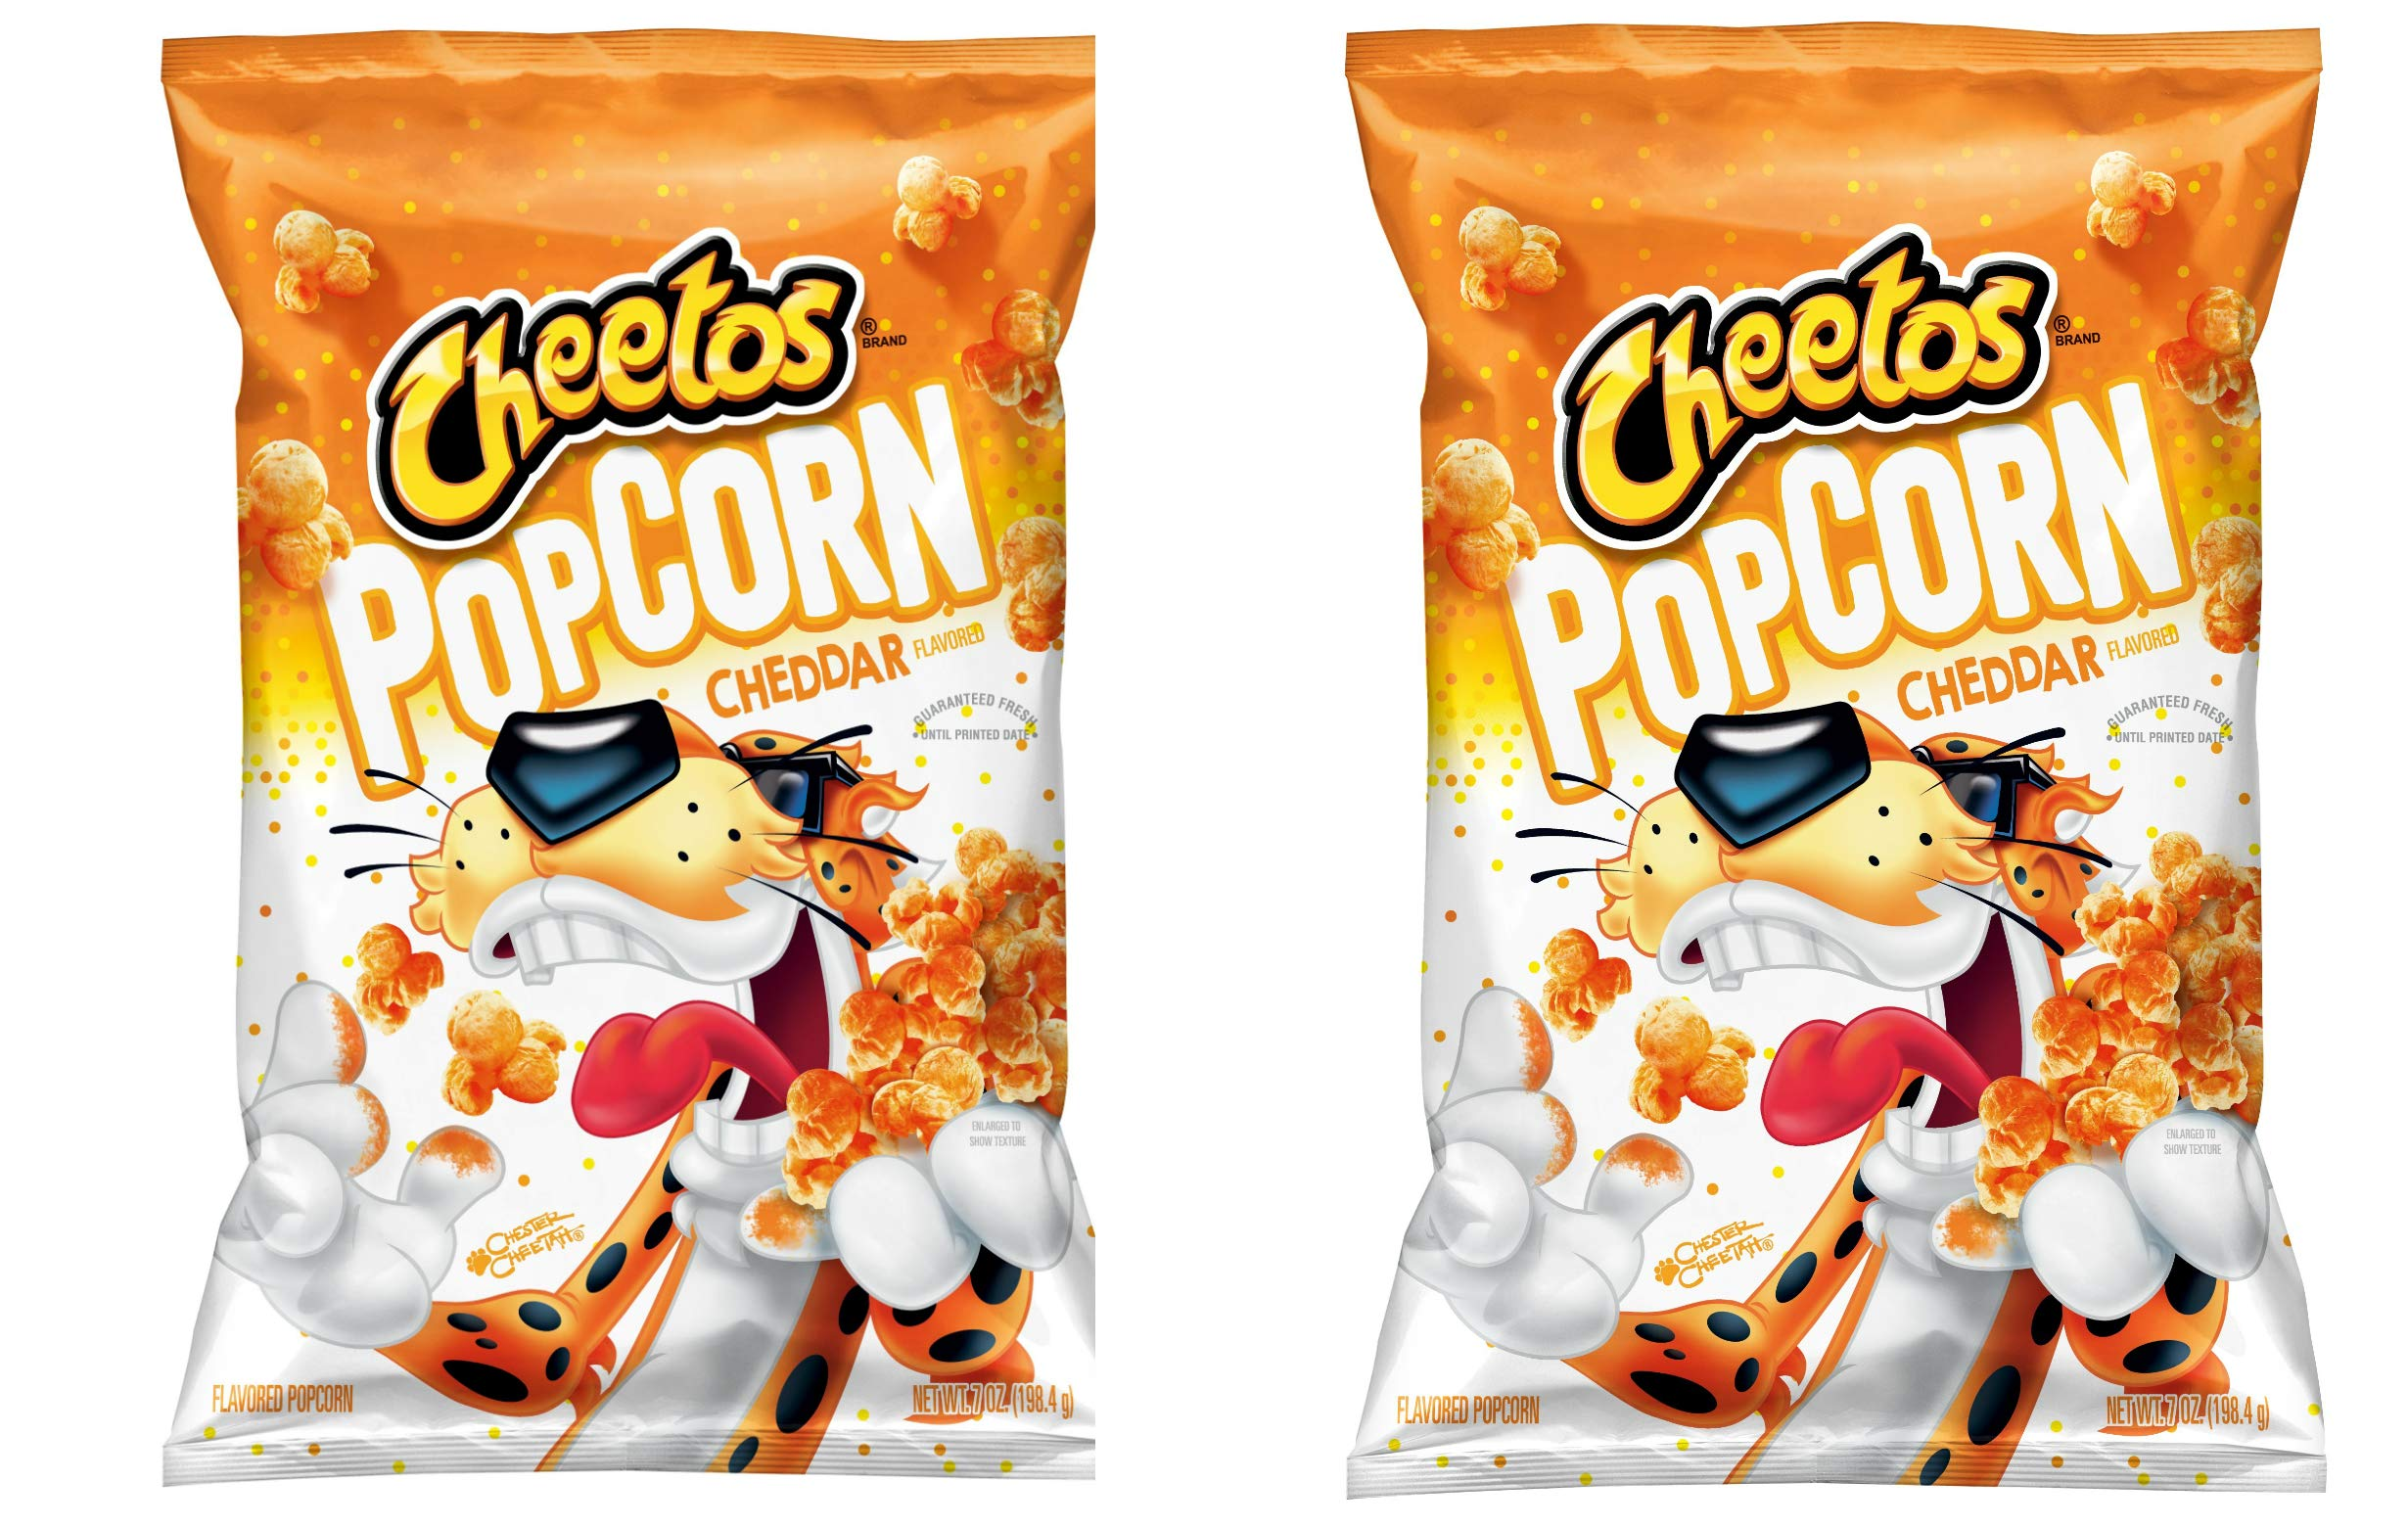 Cheetos Cheddar Popcorn 7oz. Two Pack. Ready to Eat Popcorn Snack